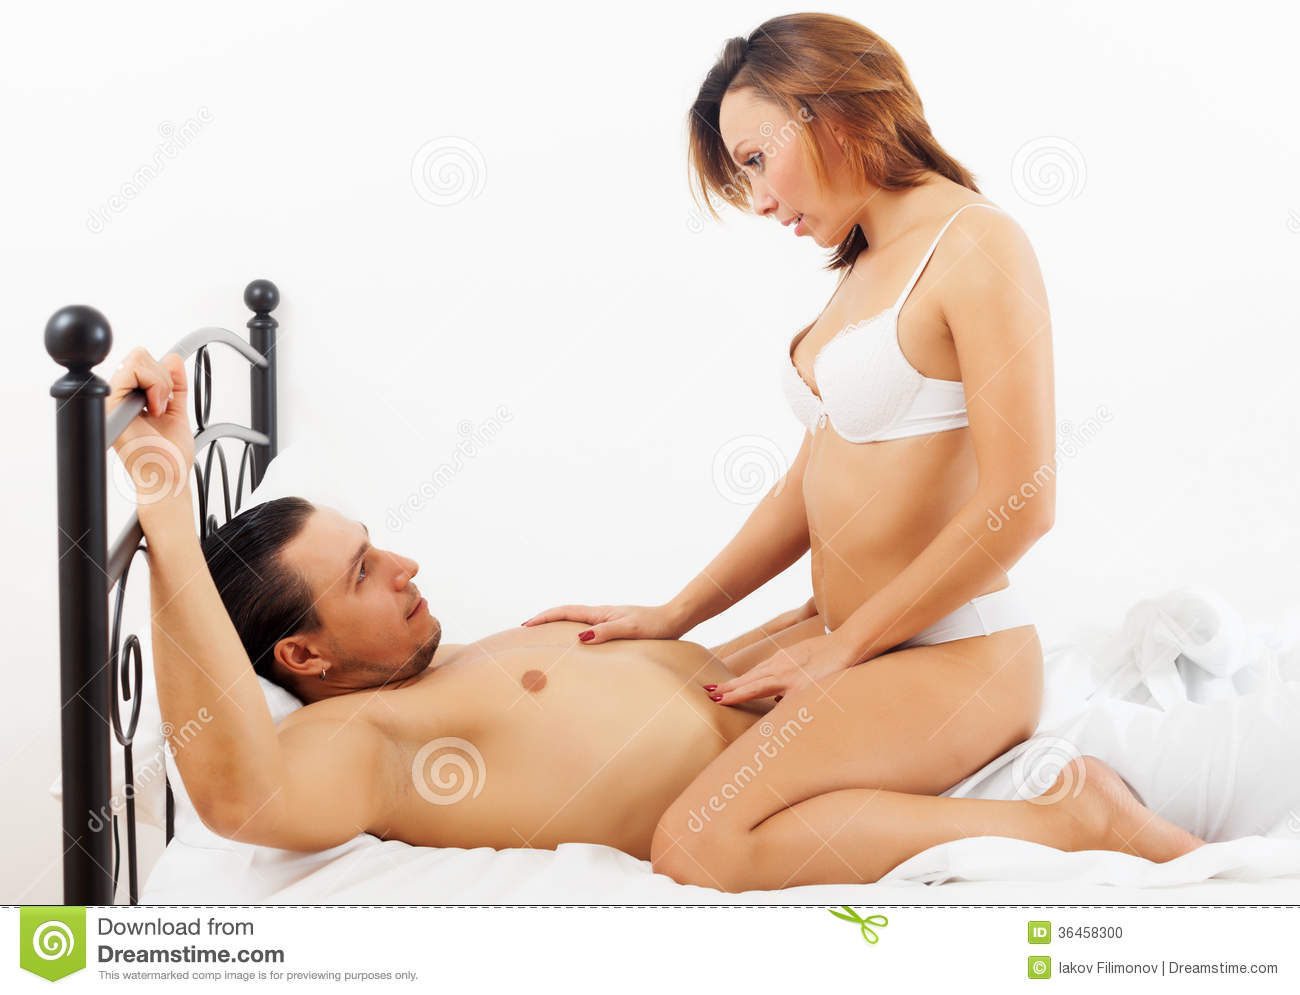 Man and woman in sex